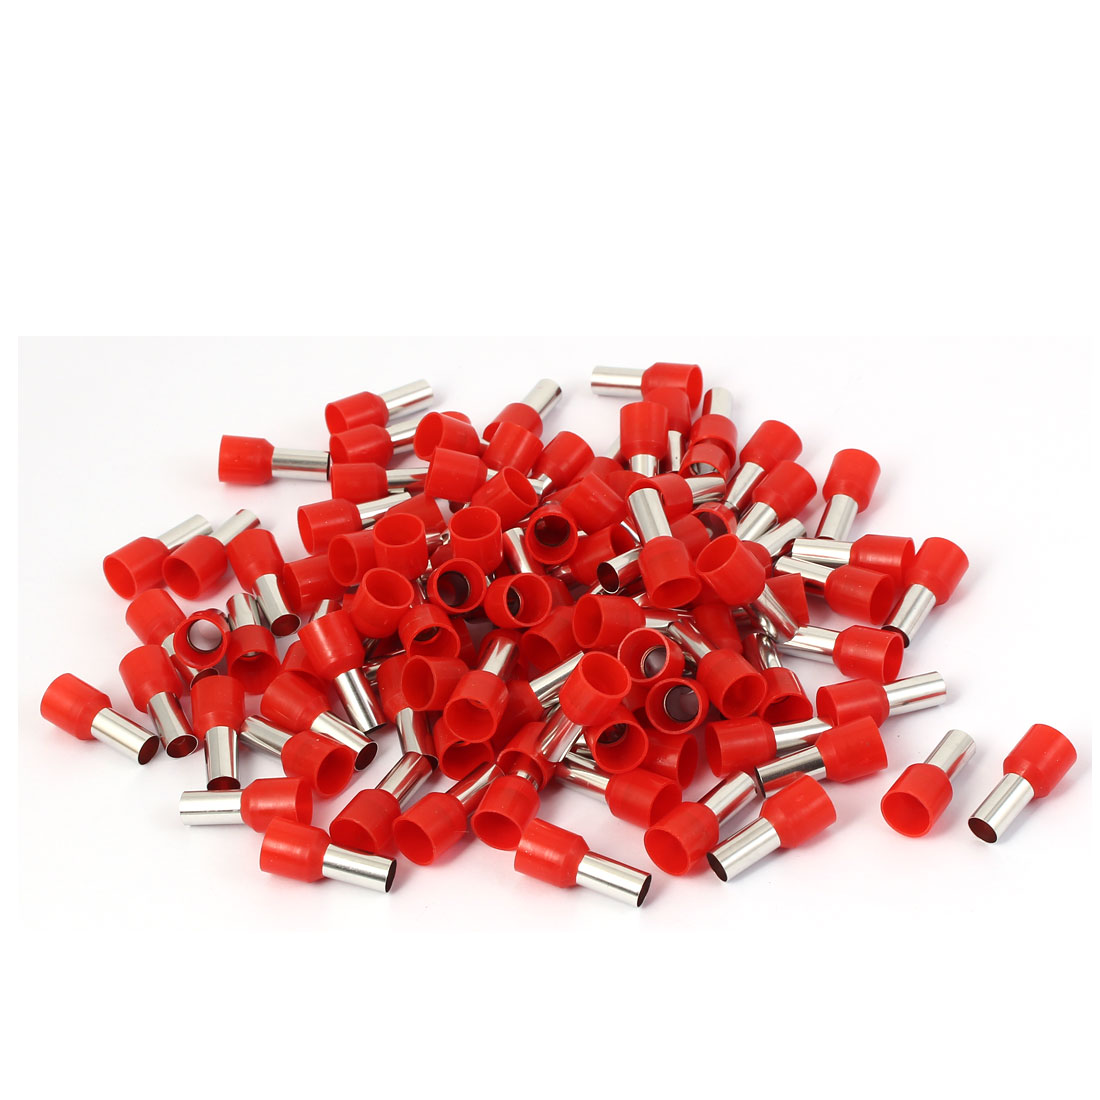 E16-12 Red Tube Design Electrical Cable Wire Crimp Insulated Terminal 100pcs